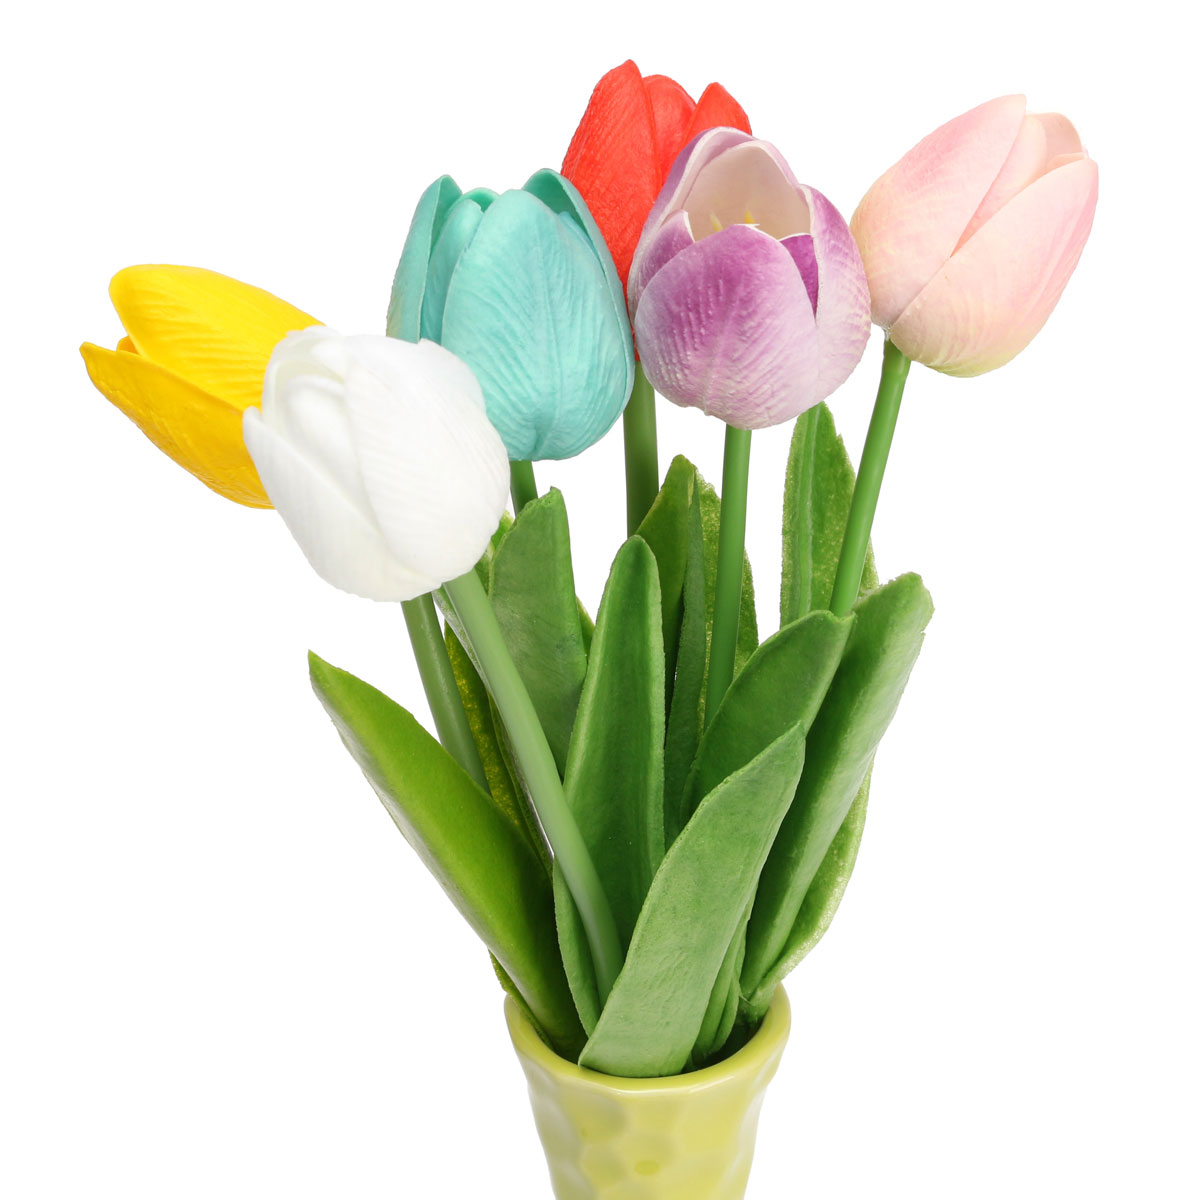 Buy 1 pieces wedding tulip flower artificial pu mini simulation buy 1 pieces wedding tulip flower artificial pu mini simulation tulip flowers party home garden decoration flower 6 color in cheap price on mibaba izmirmasajfo